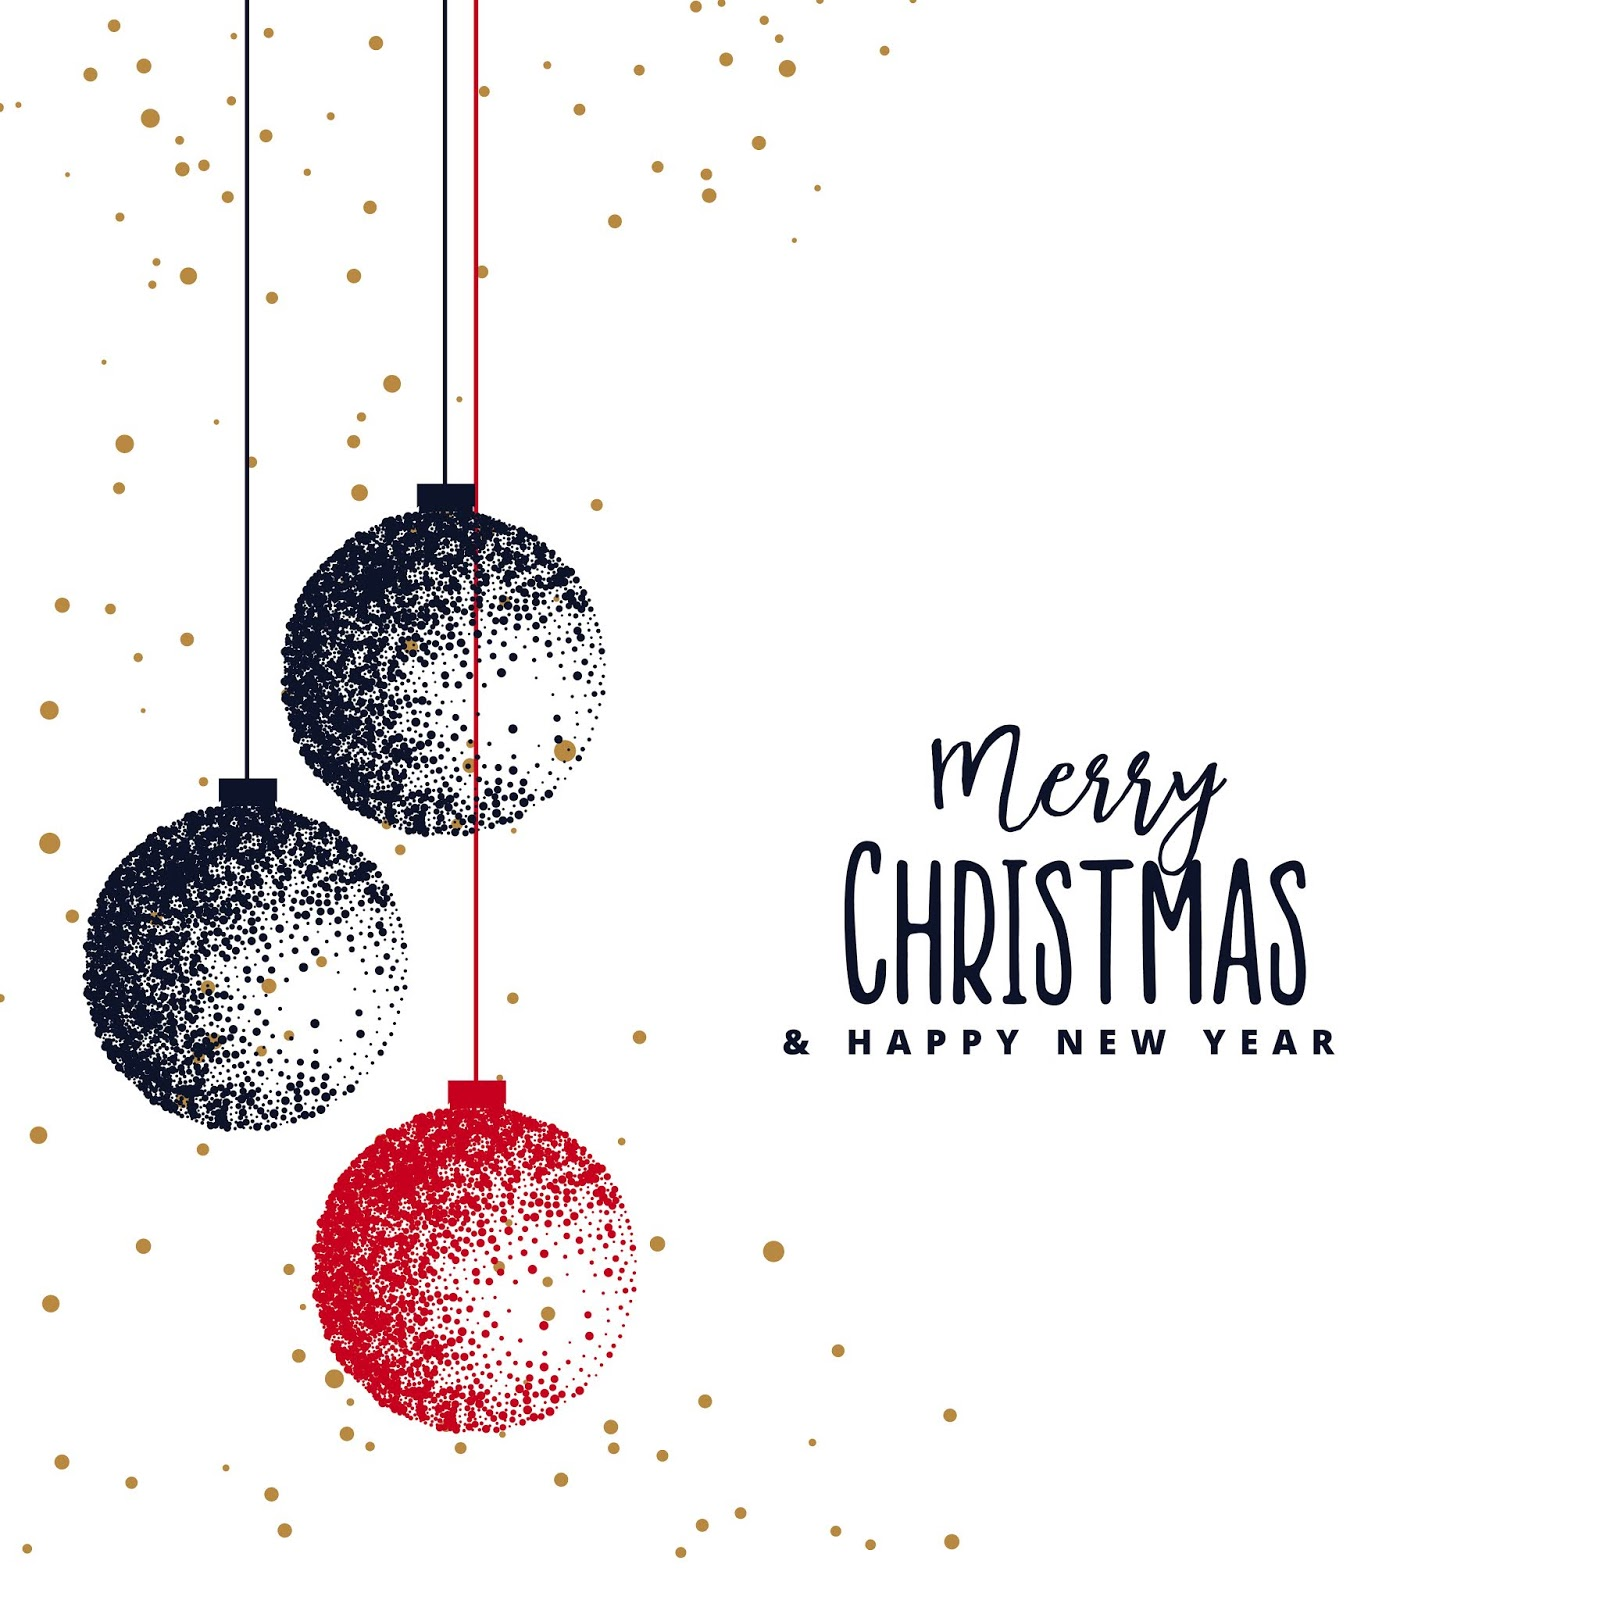 Christmas Balls Made With Stipple White Background Free Download Vector CDR, AI, EPS and PNG Formats